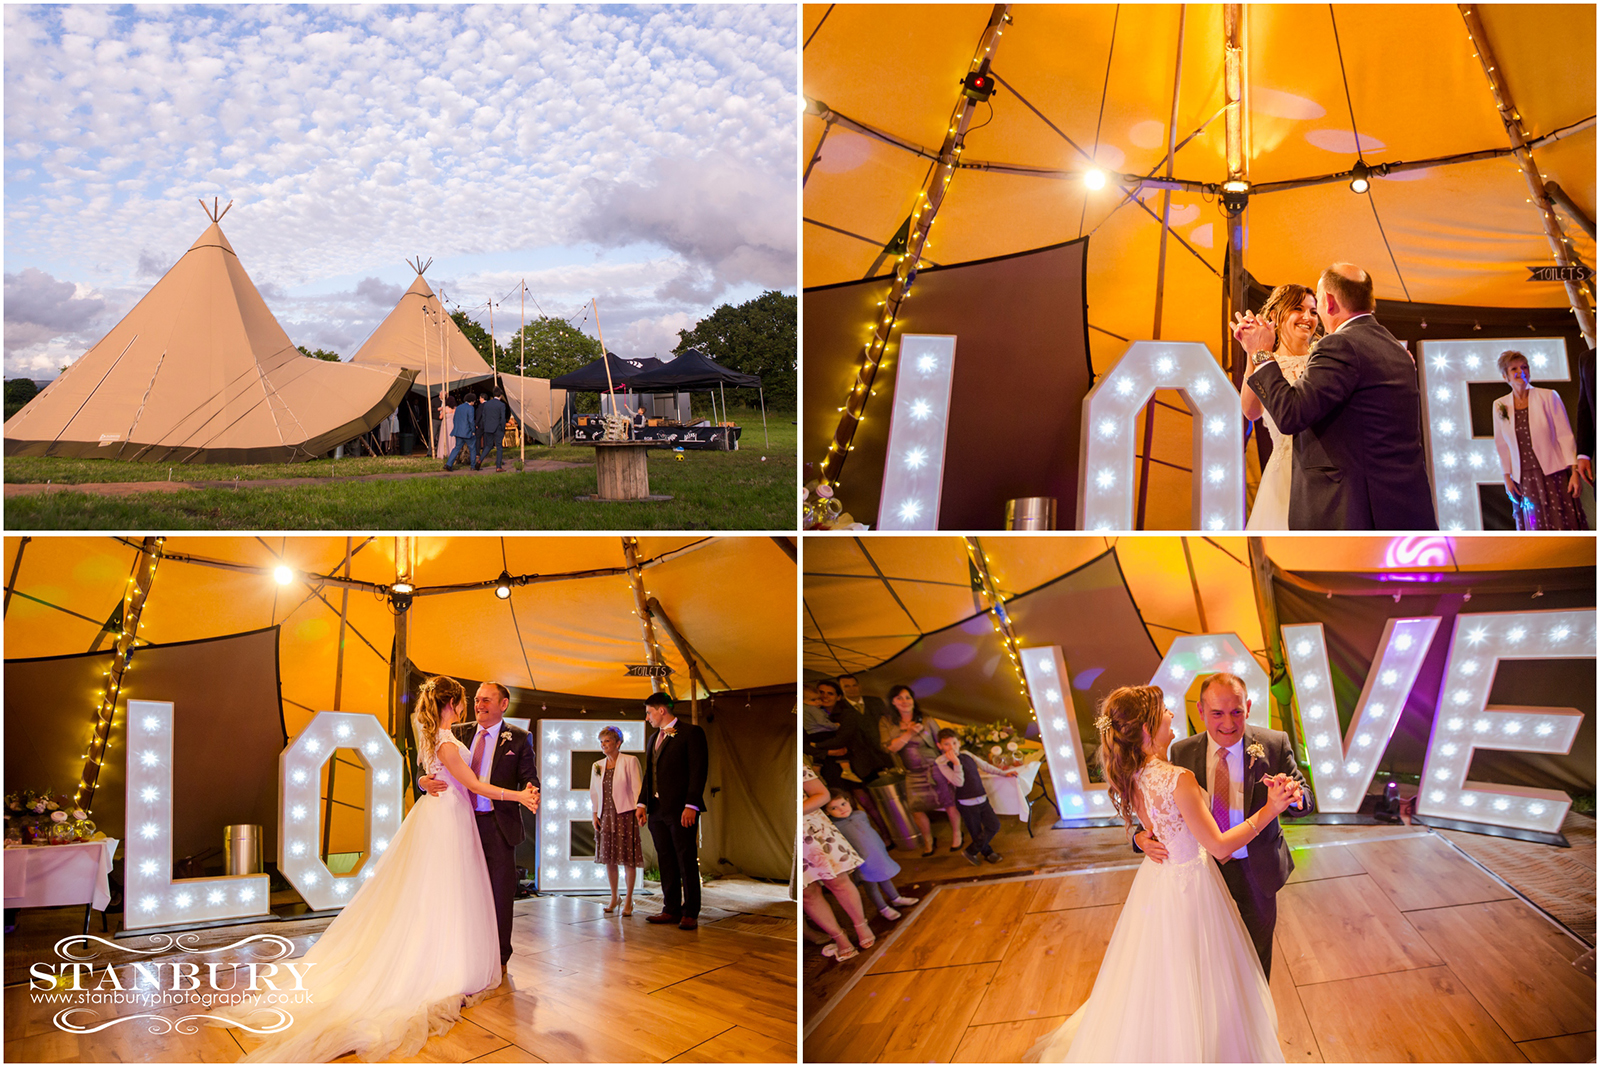 lancashire tipi wedding photography stanbury photographers